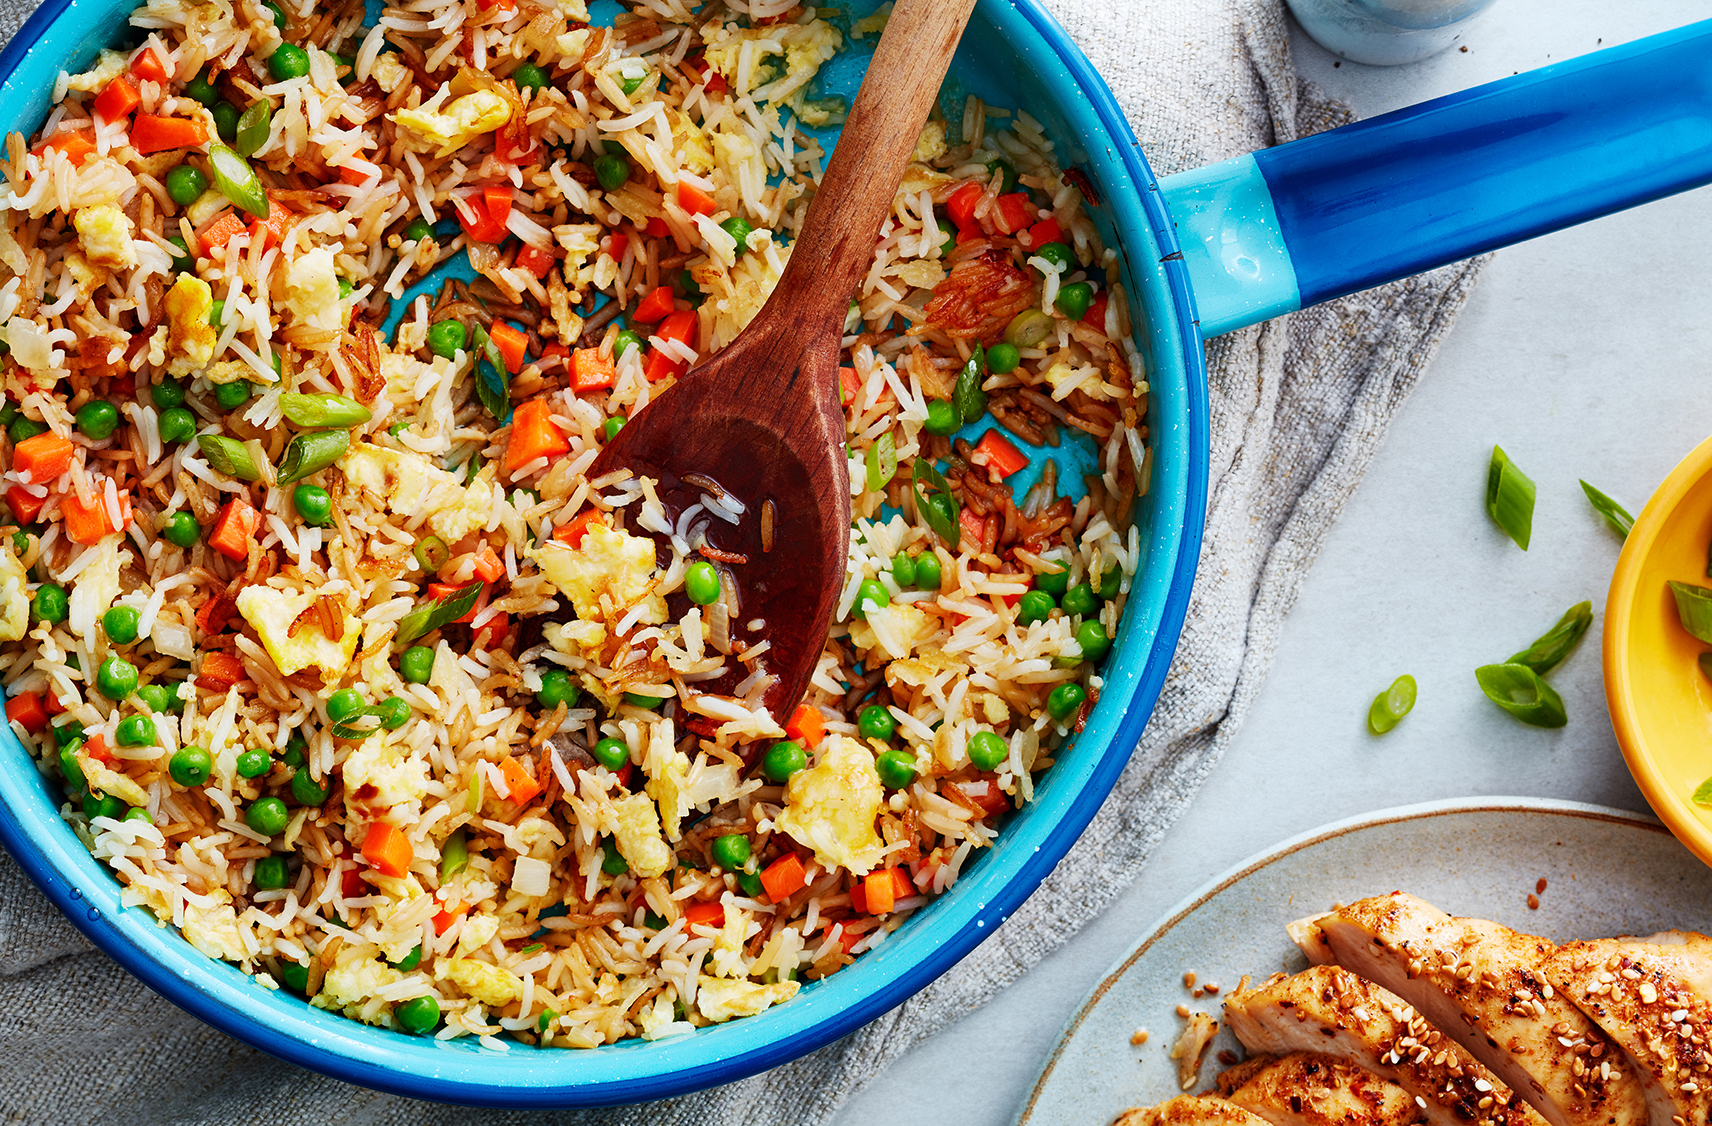 A spoon scoops up fried rice with diced carrot and peas from a blue skillet